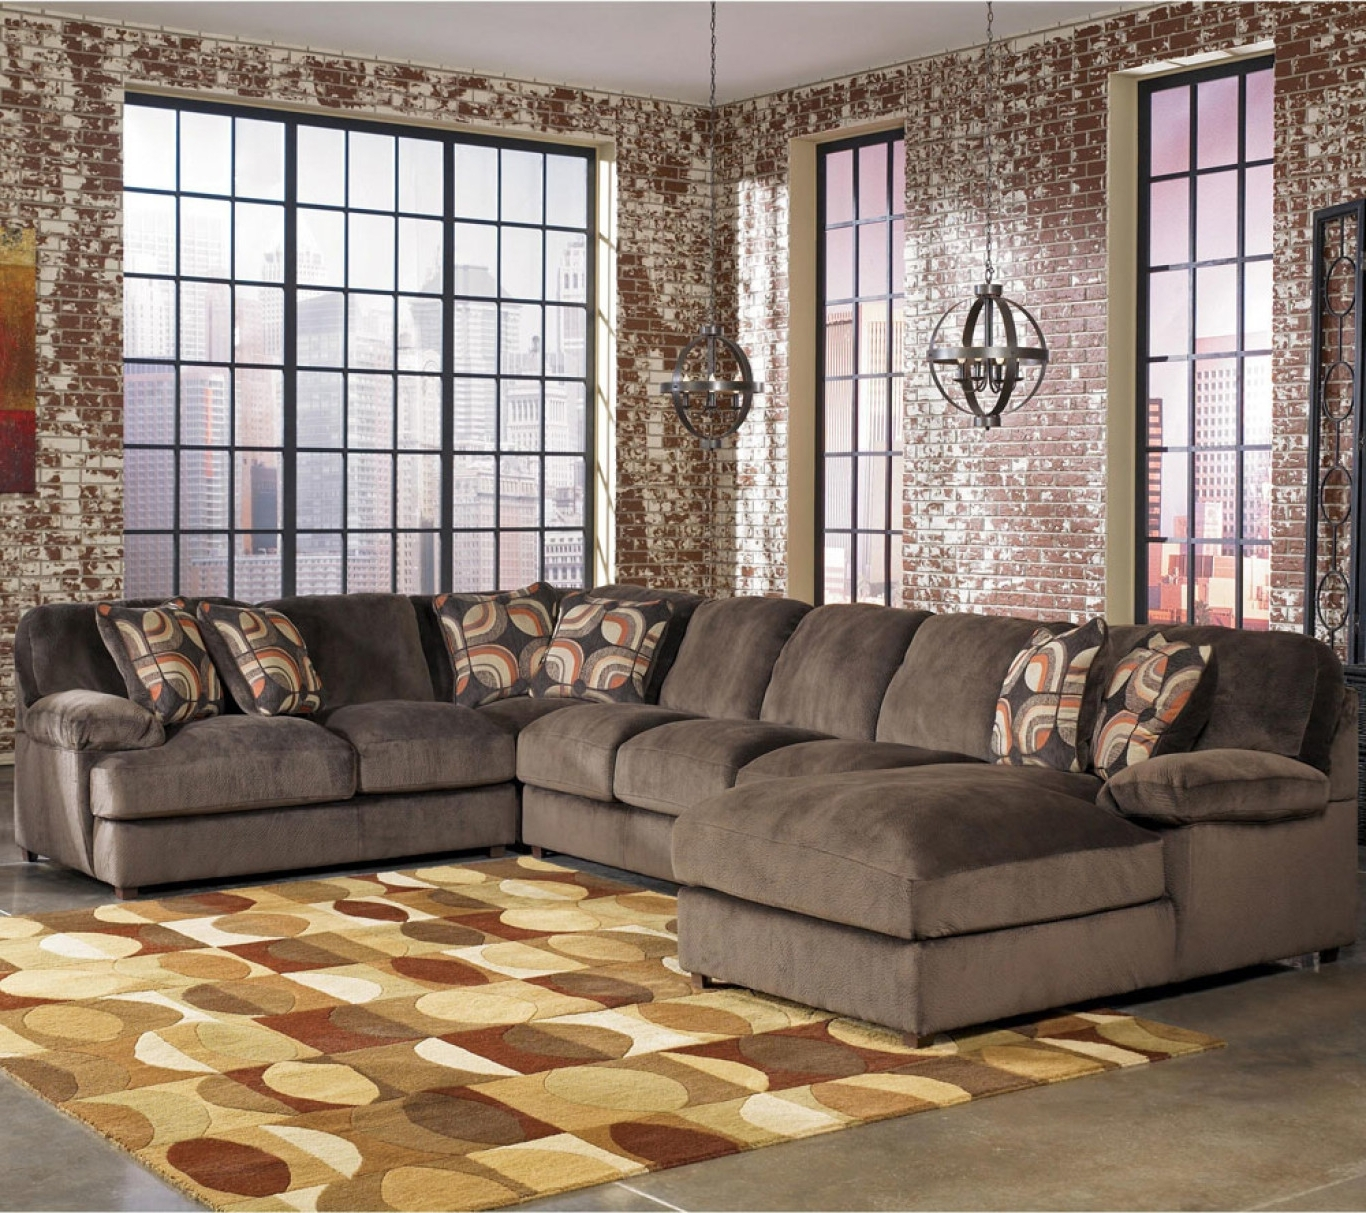 St Cloud Mn Sectional Sofas within Trendy Hom Furniture St Cloud Mn